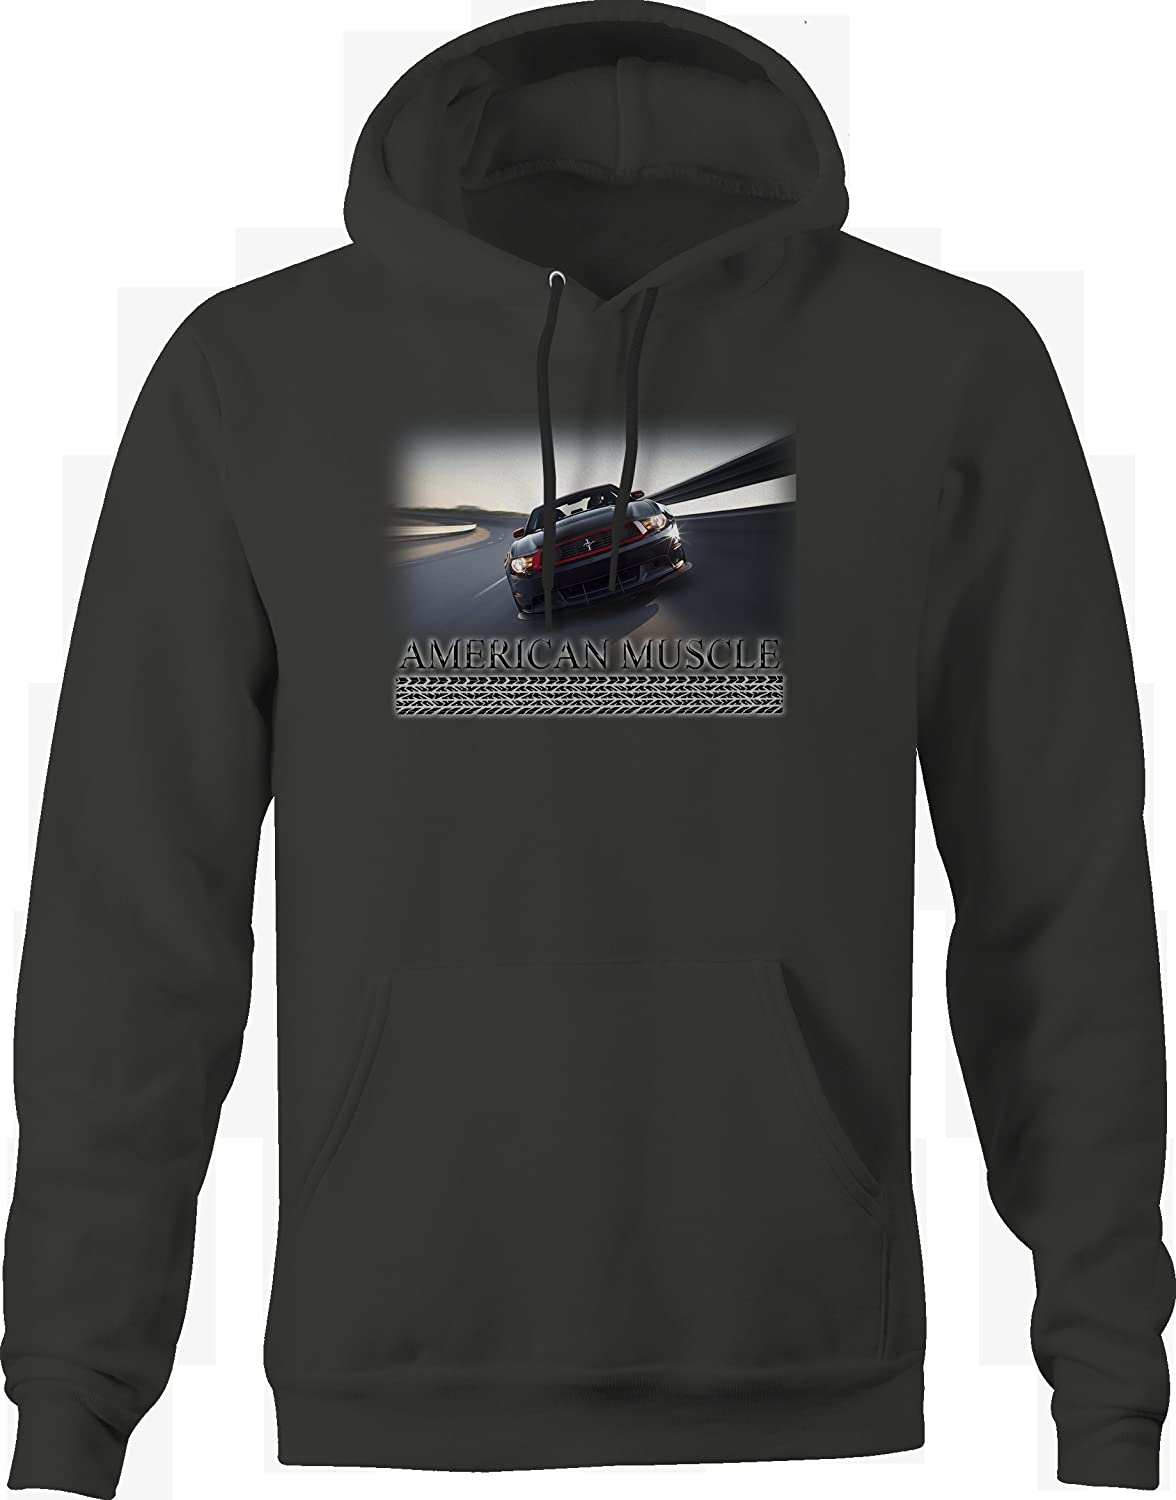 American Muscle Mustang Track Racing in The Banks Graphic Hoodie for Men